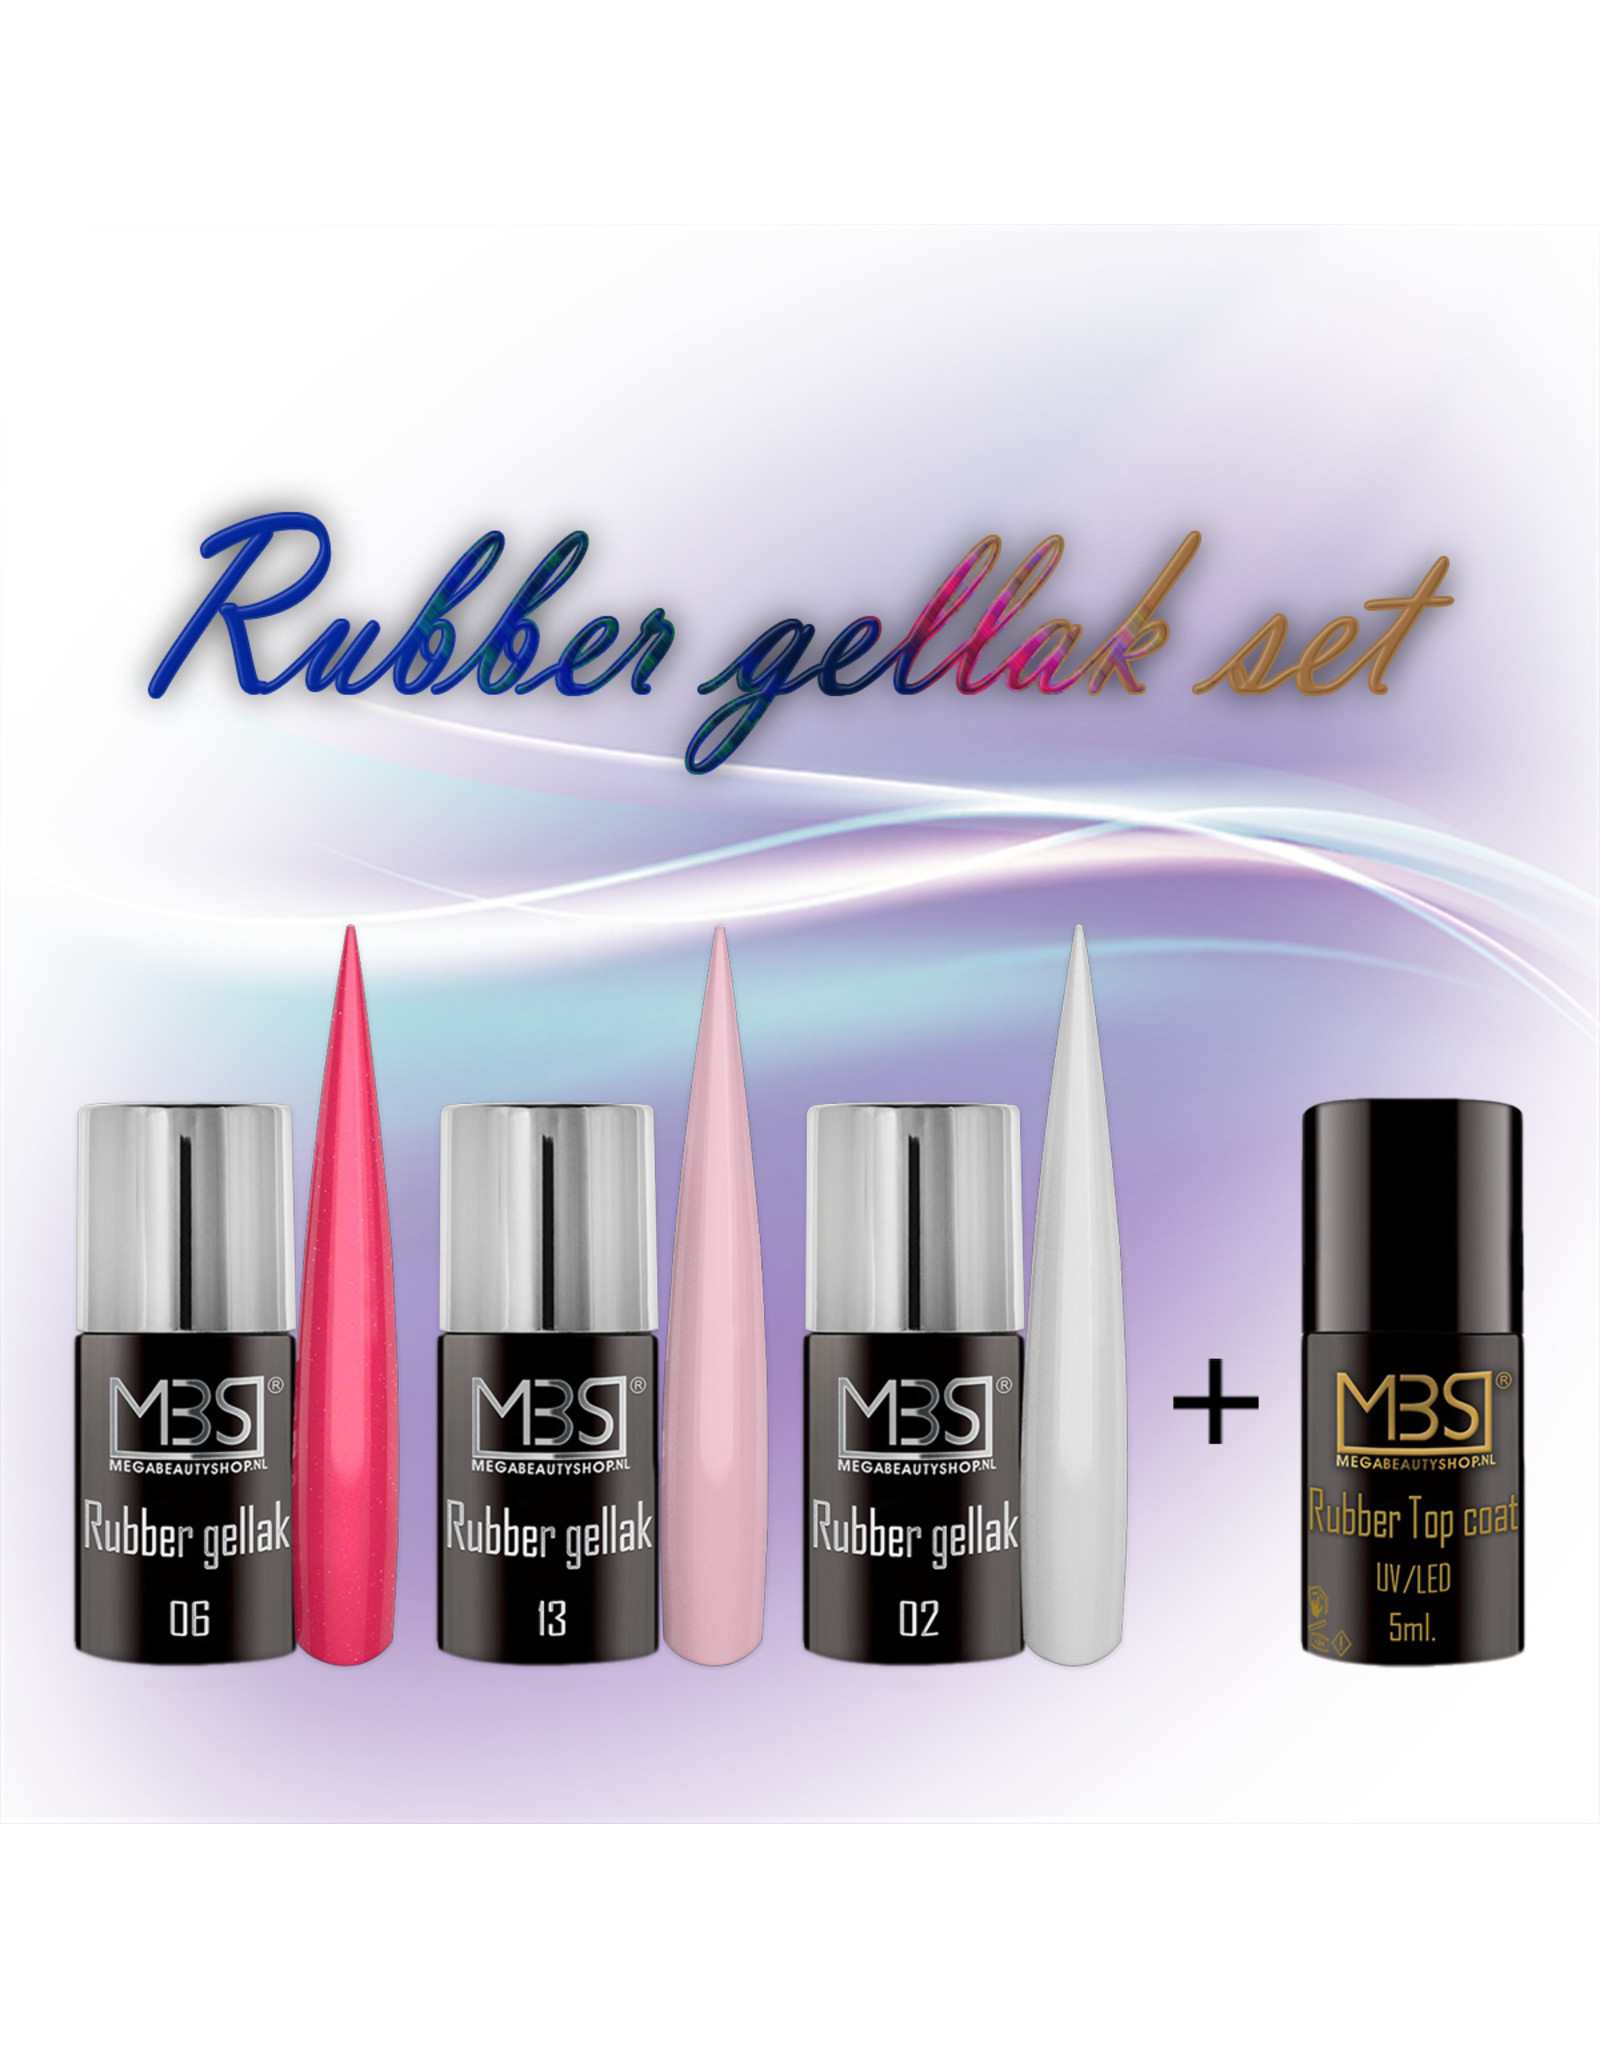 Mega Beauty Shop® Rubber gellak set met Rubber topcoat (01)